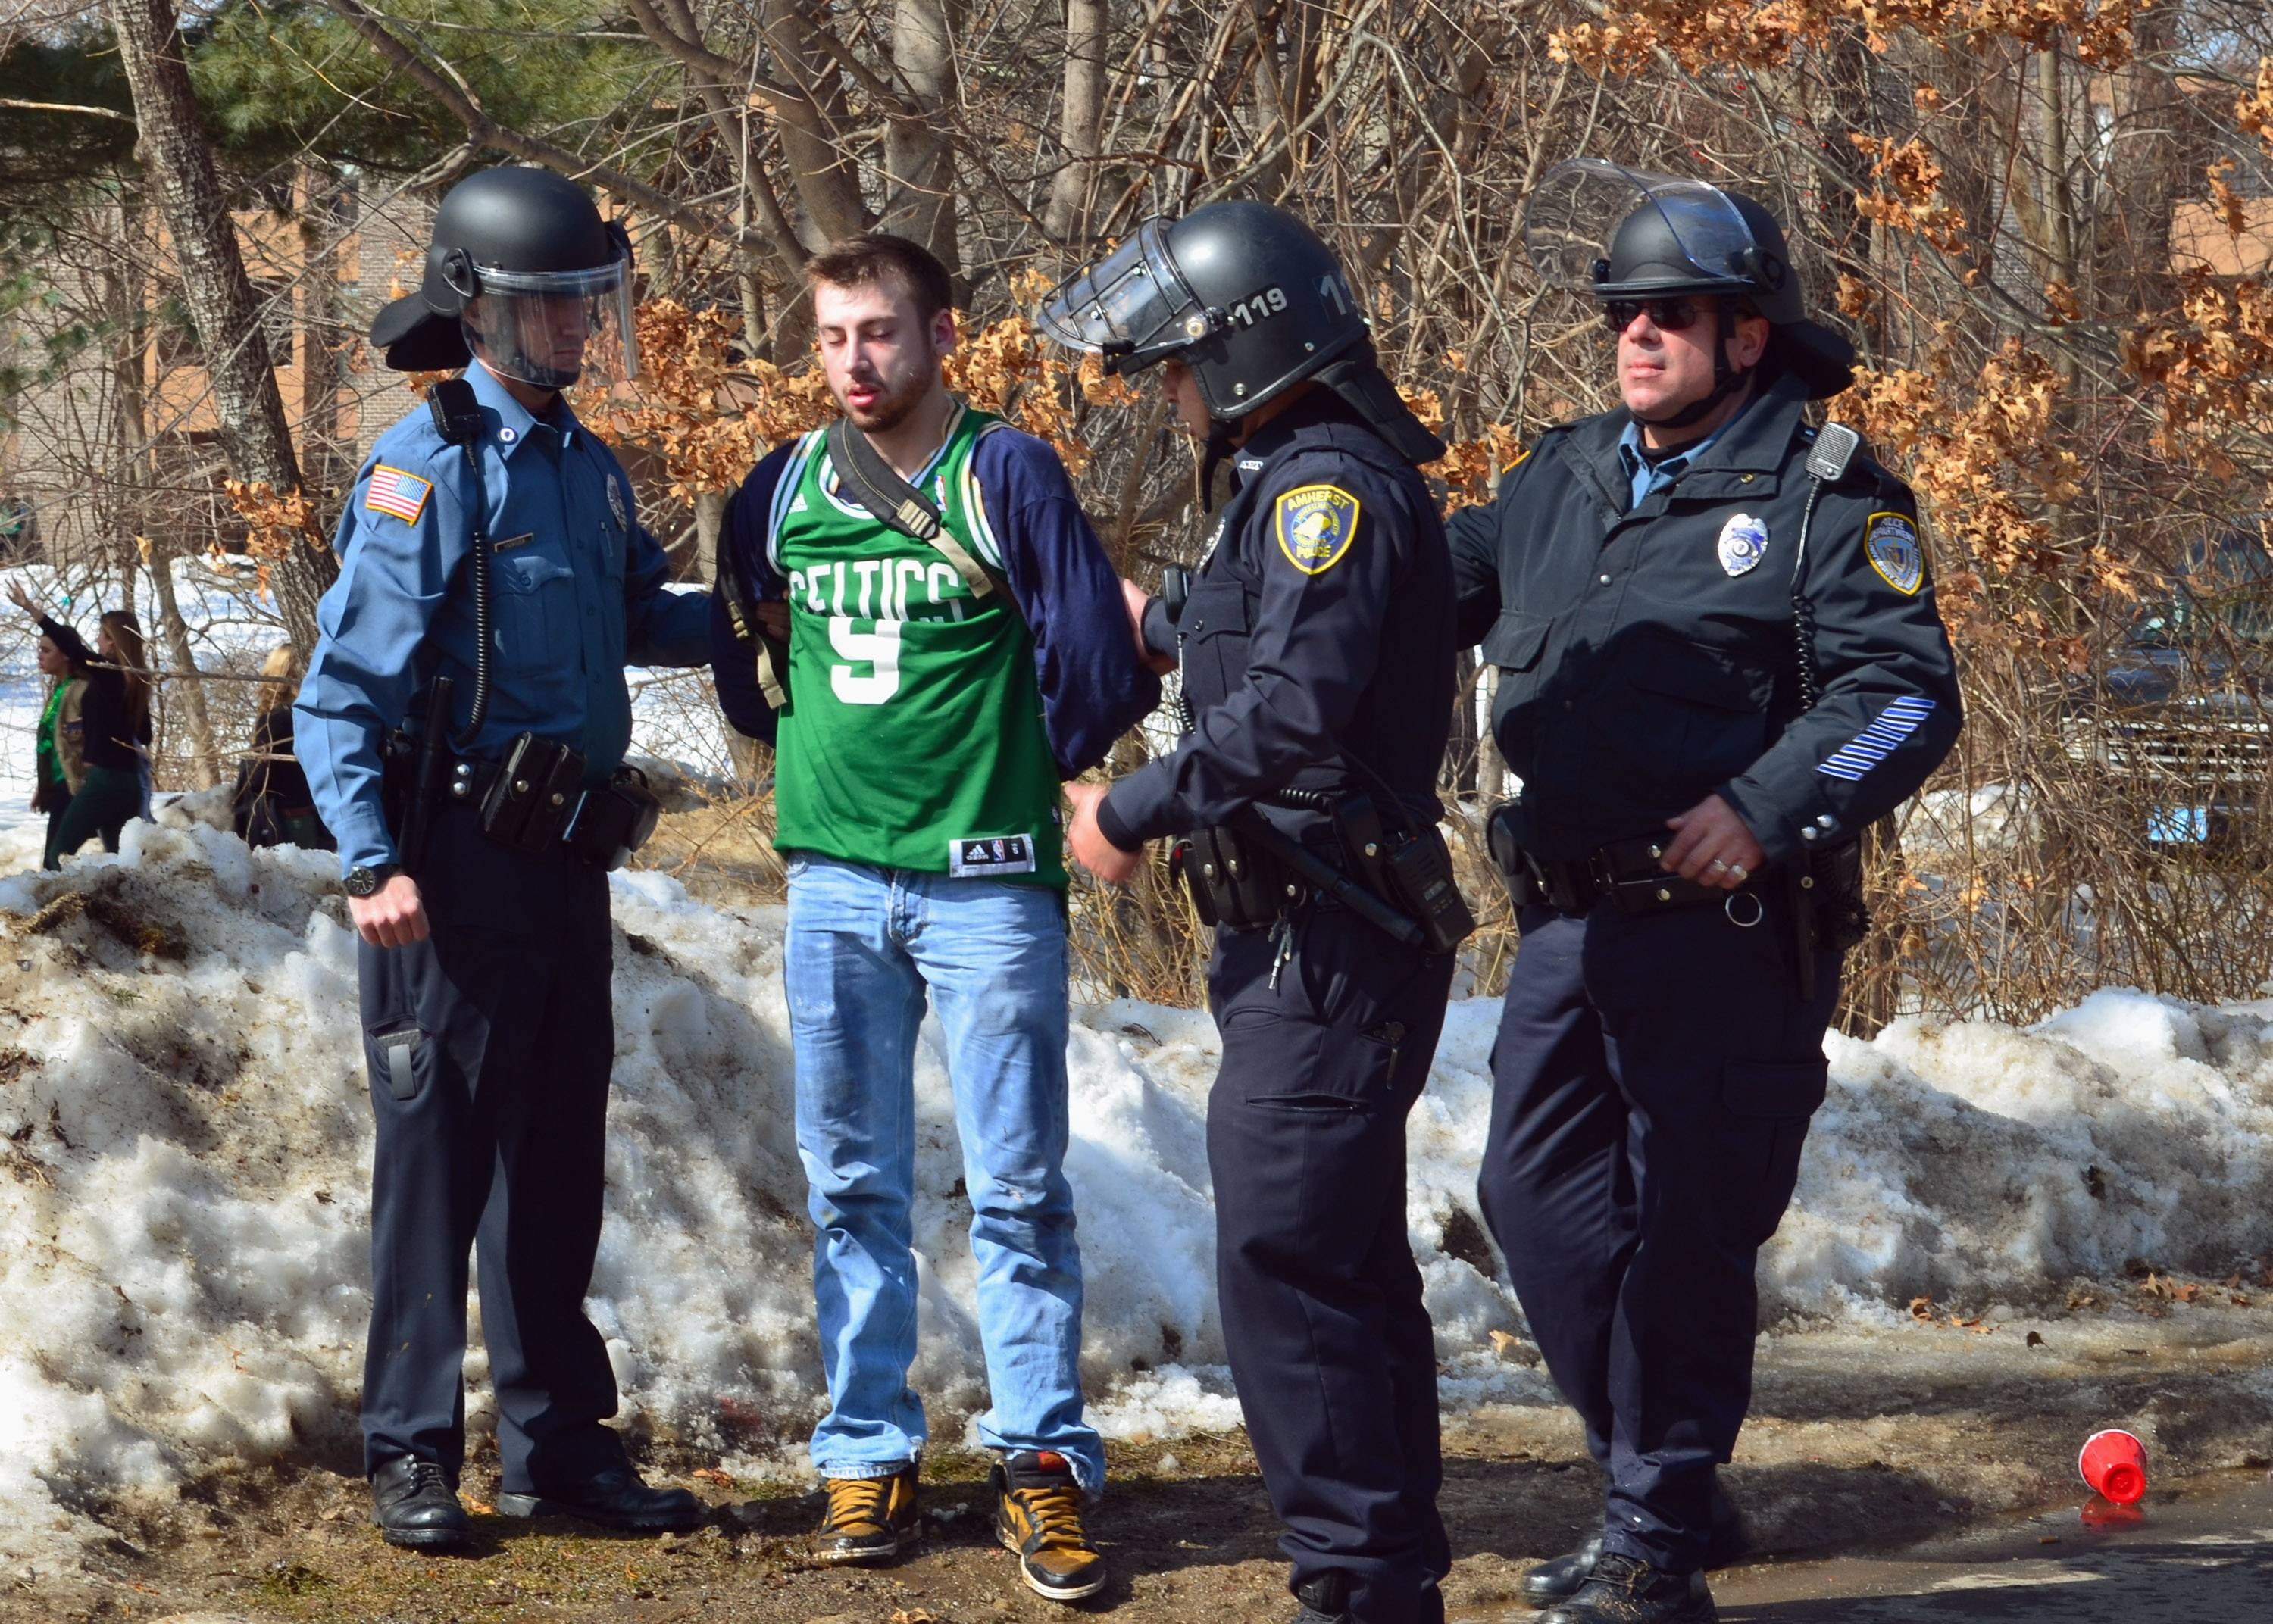 73 arrested at Massachusetts pre-St. Pat's blowout